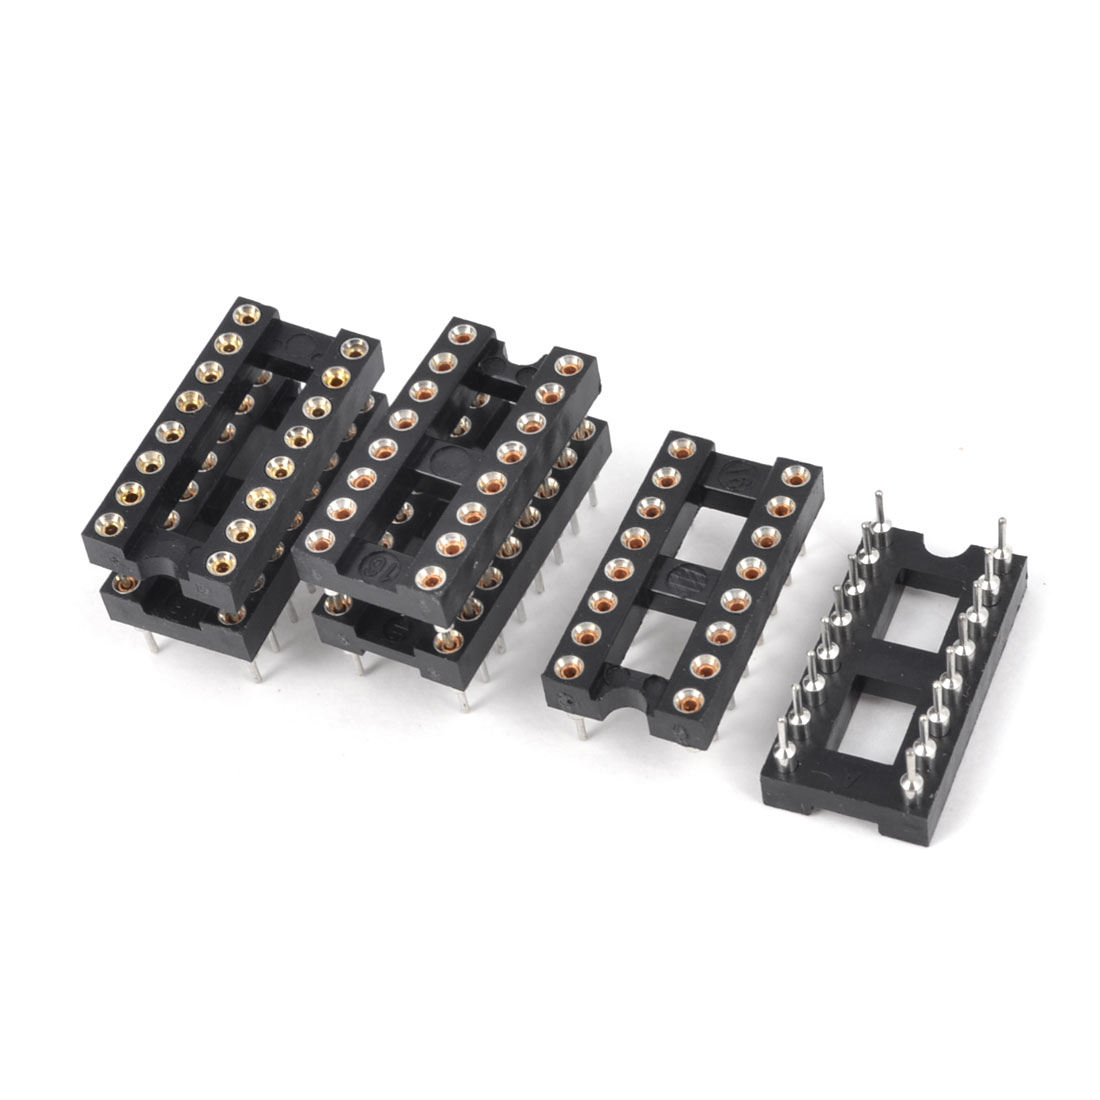 6 Pieces 2.54mm Pitch 16 Round Pins Double Row DIP IC Socket Adapter Solder